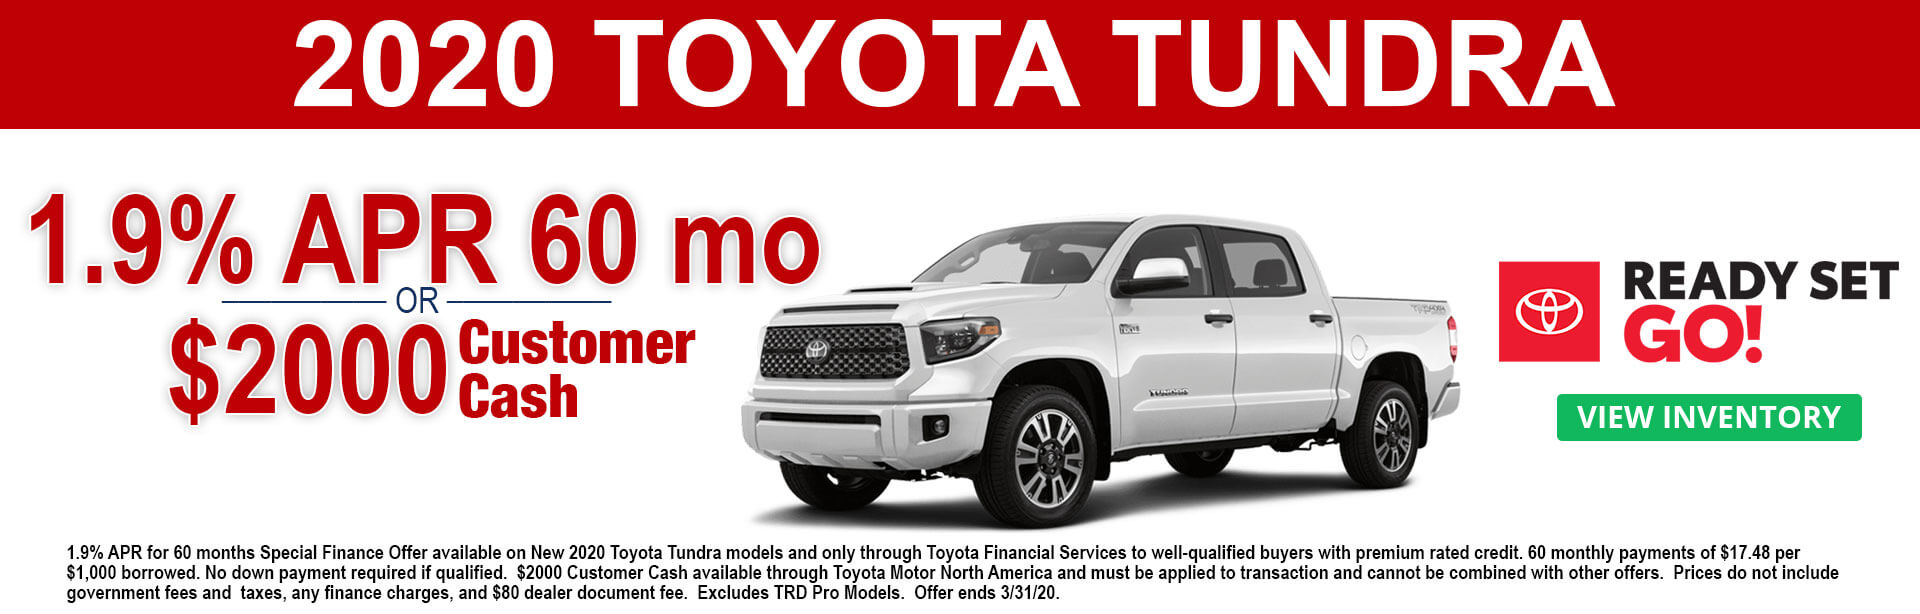 2020 Toyota Tundra Customer Cash and APR Offer